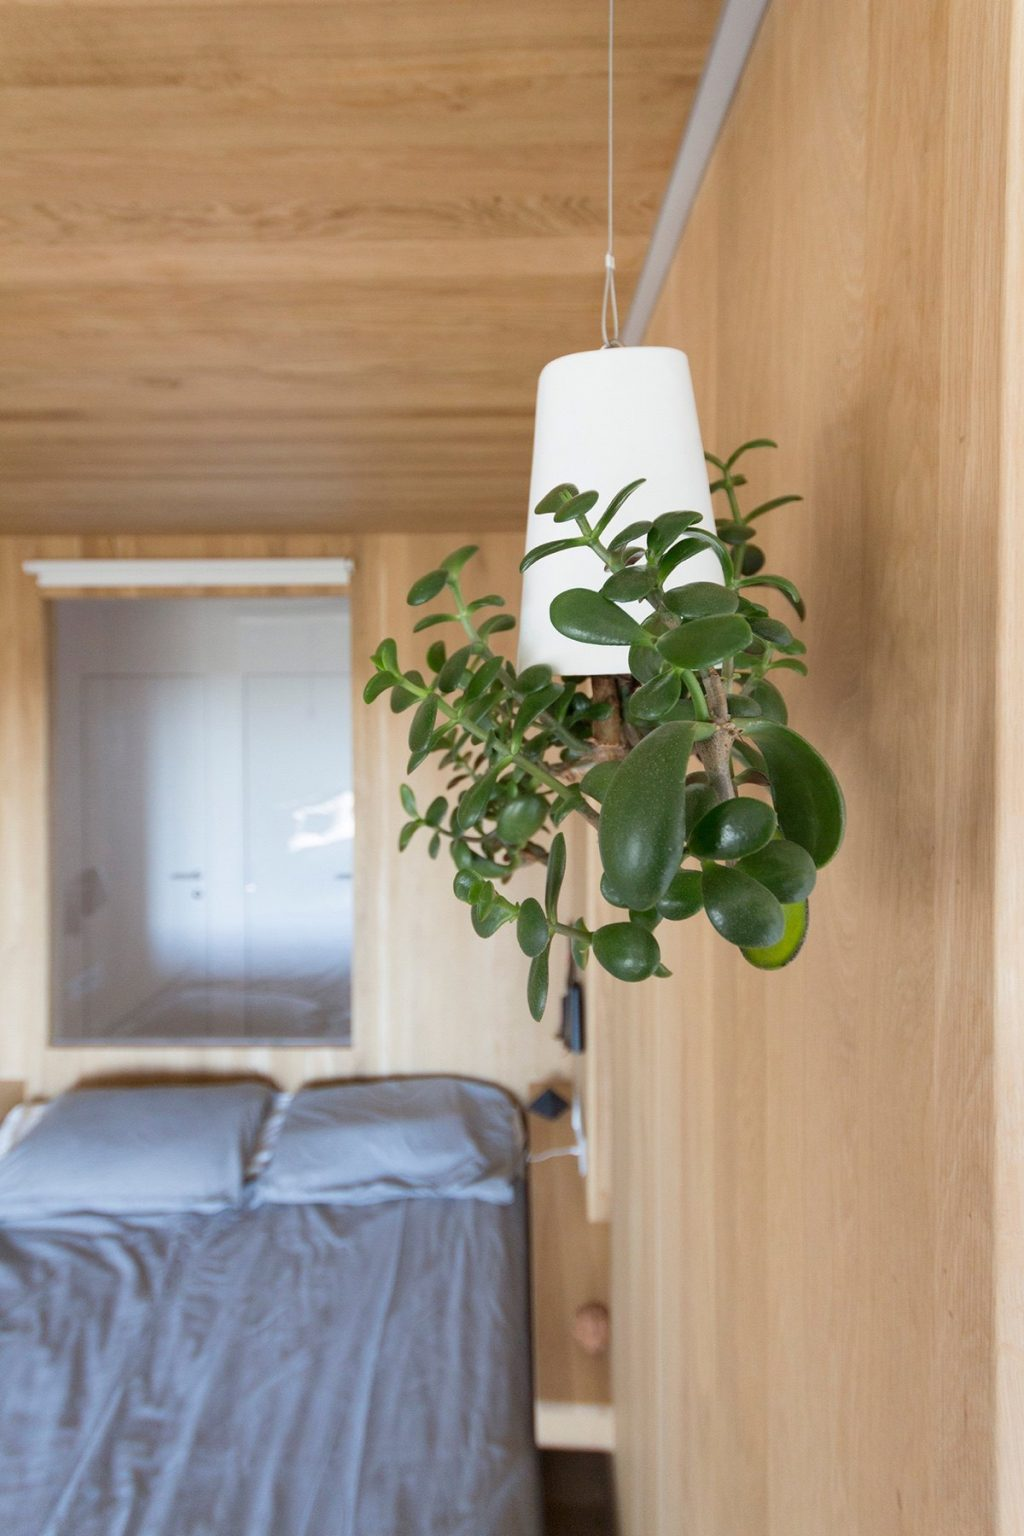 25.Bedroom-living-light-white-cone-on-wooden-wall-original-adds-character